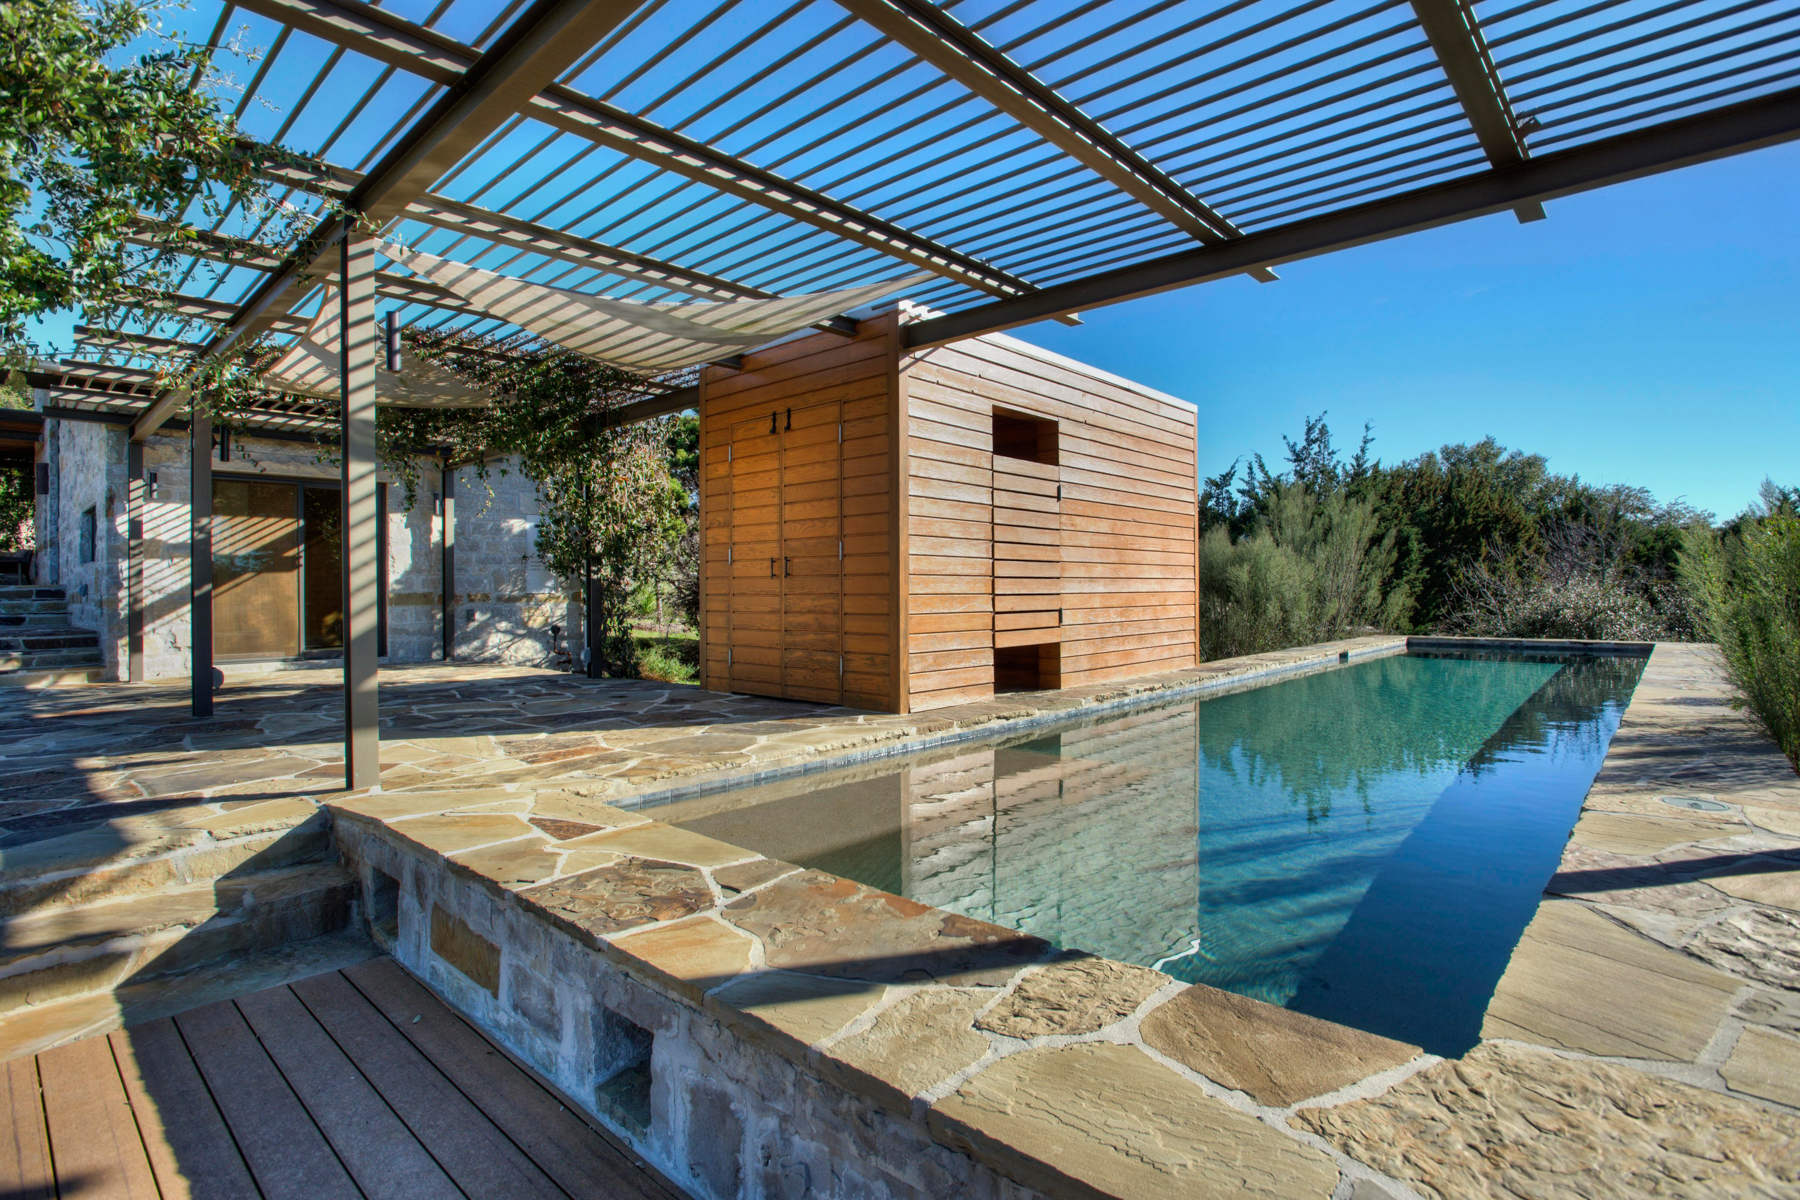 Additional photo for property listing at Stunning Contemporary Masterpiece 25053 Black Crk San Antonio, Texas 78257 United States